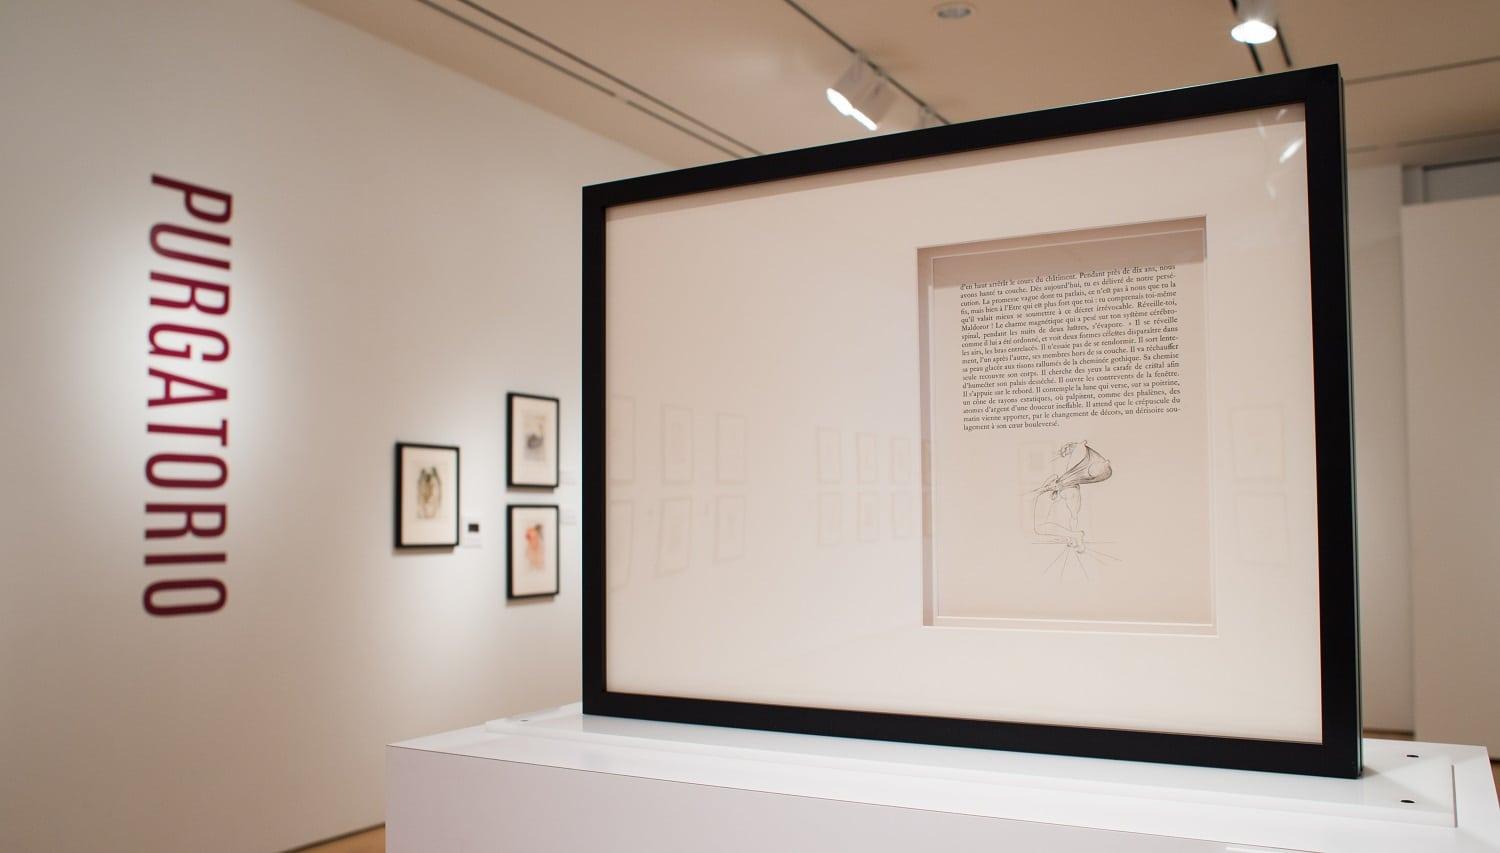 """A page of Dalí's illustrations from """"Les Chants de Maldoror"""" from the """"Salvador Dalí's Stairway to Heaven"""" exhibition at Louisiana's Hilliard University Art Museum."""